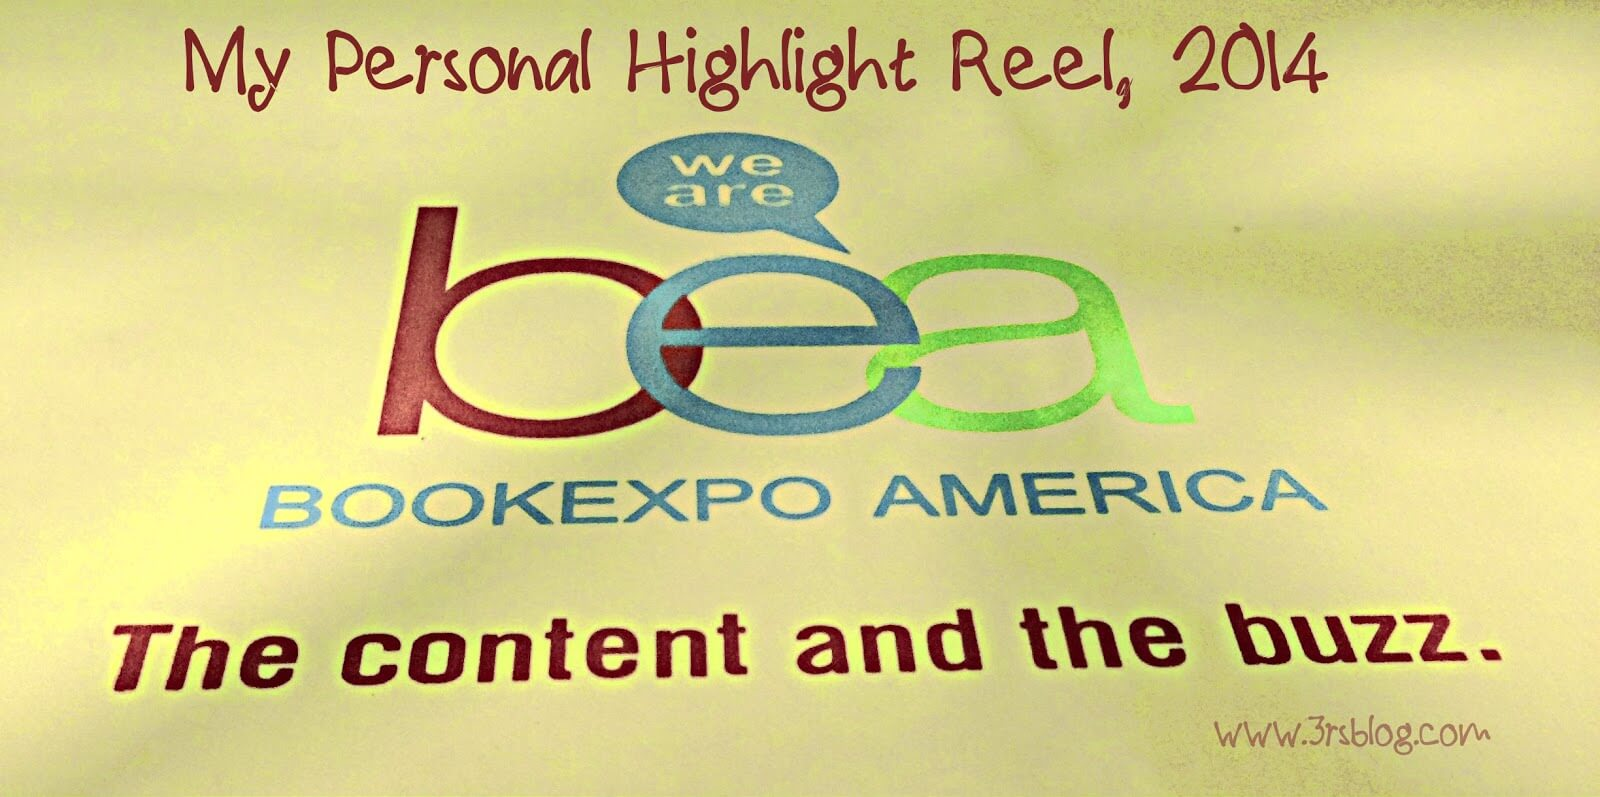 My Personal #BEA14 Highlight Reel